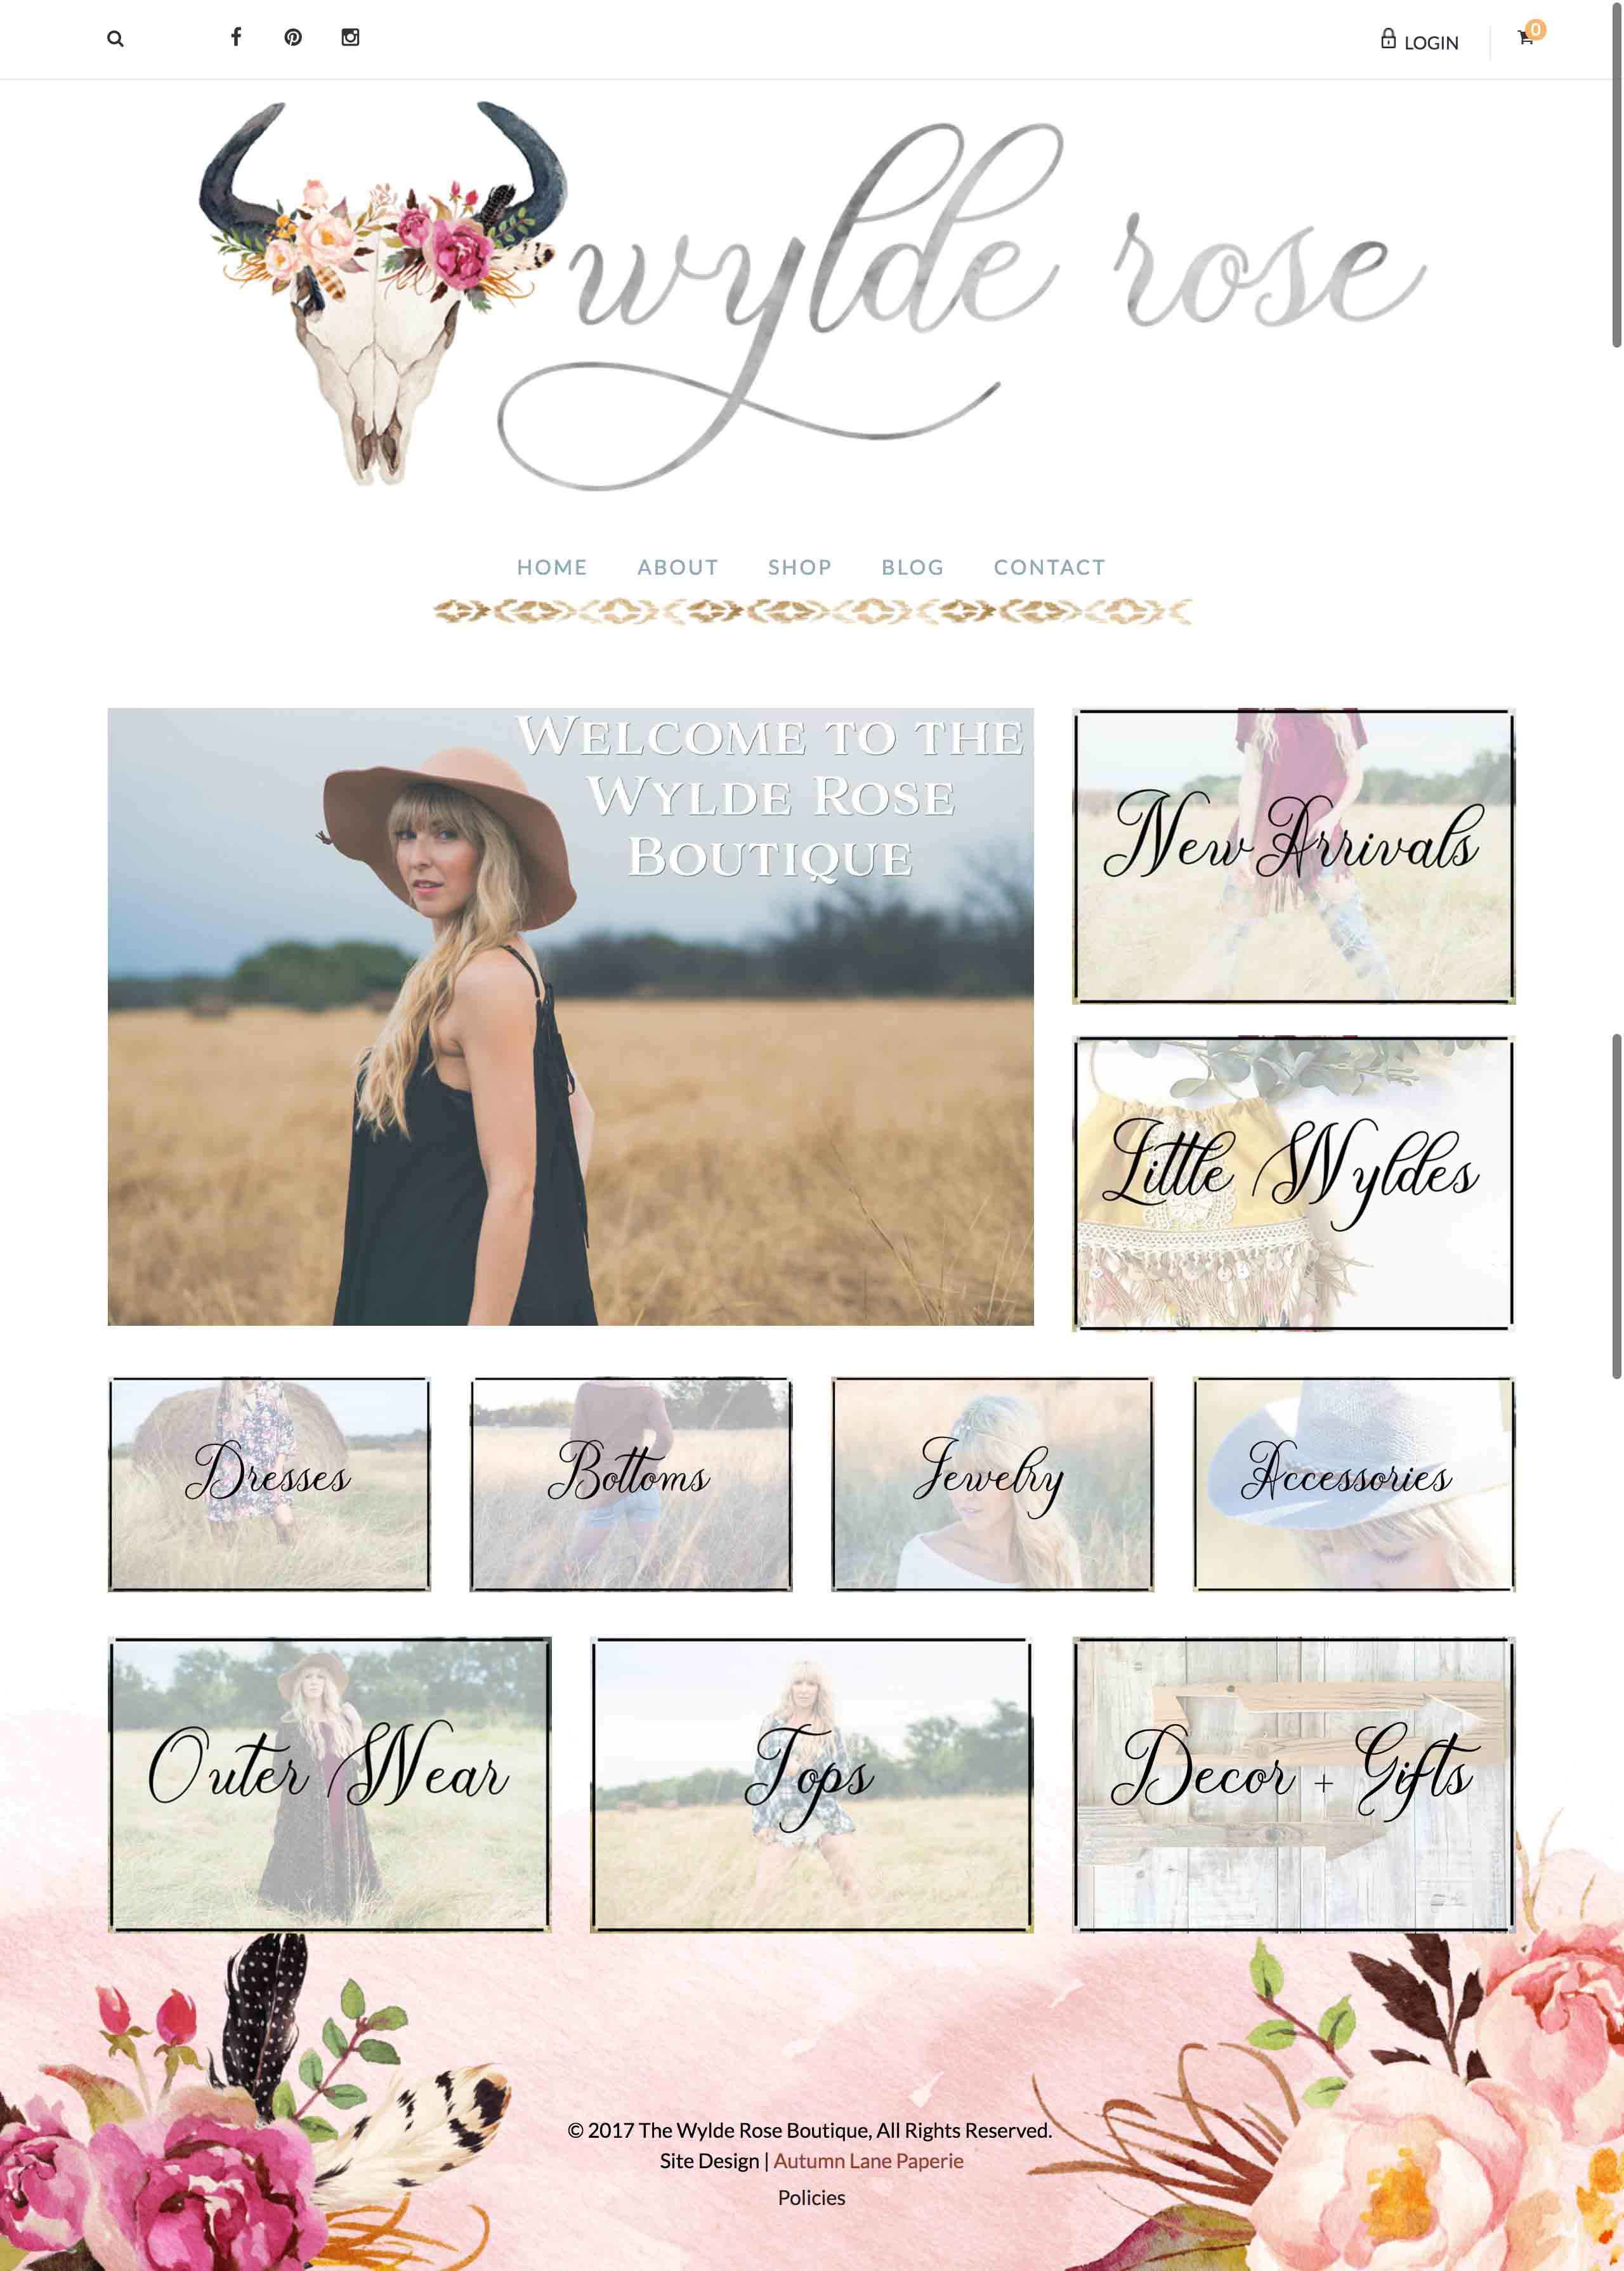 Wylde Rose Boutique